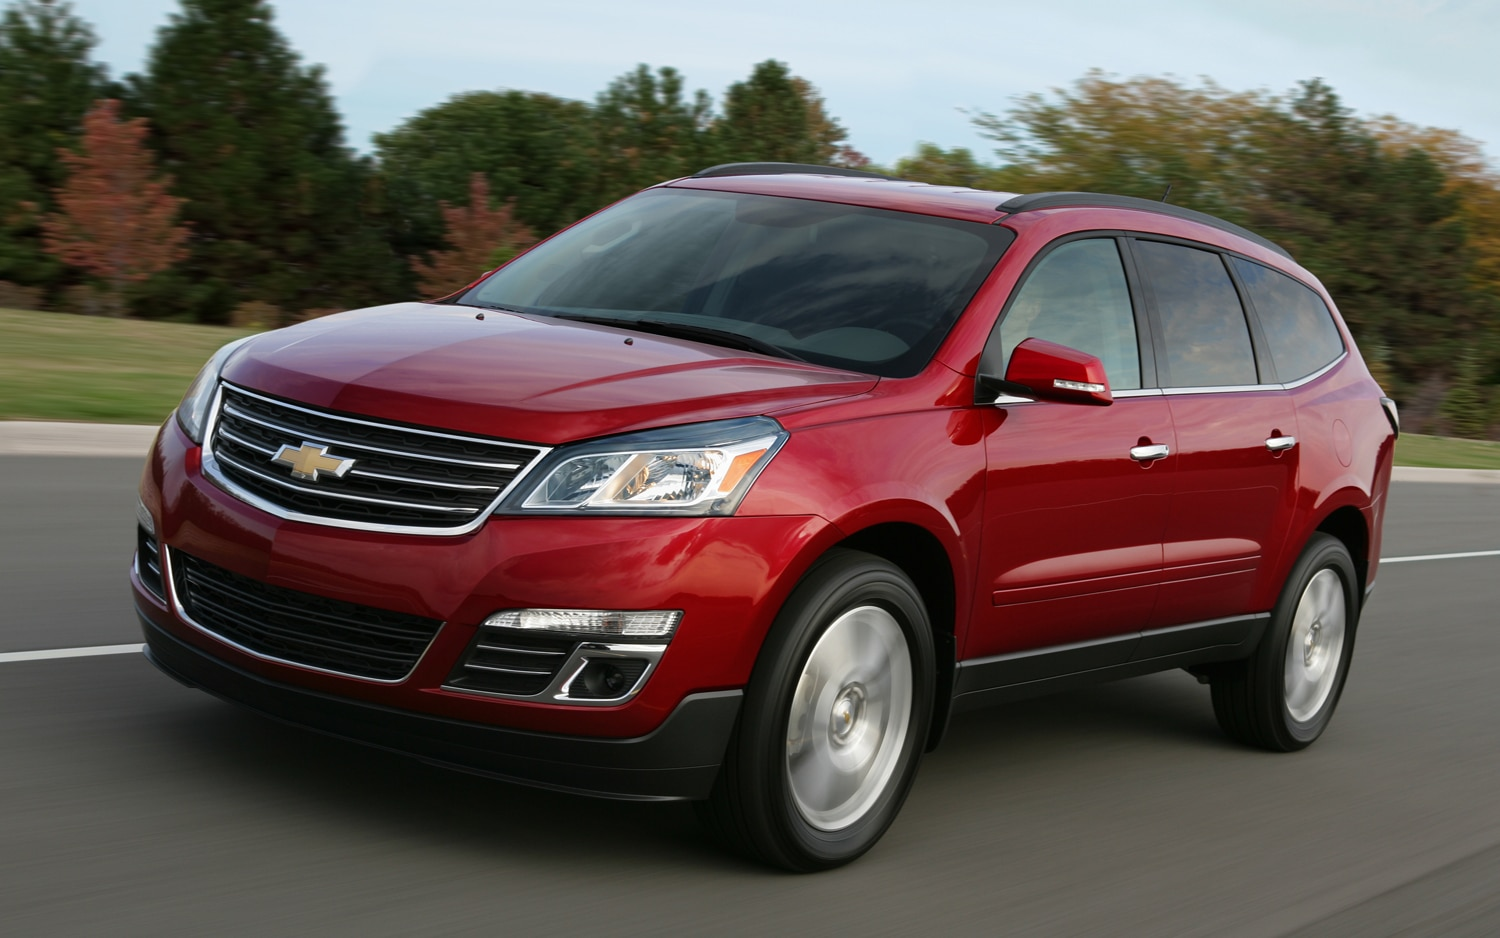 2013 Chevrolet Traverse Front View In Motion1